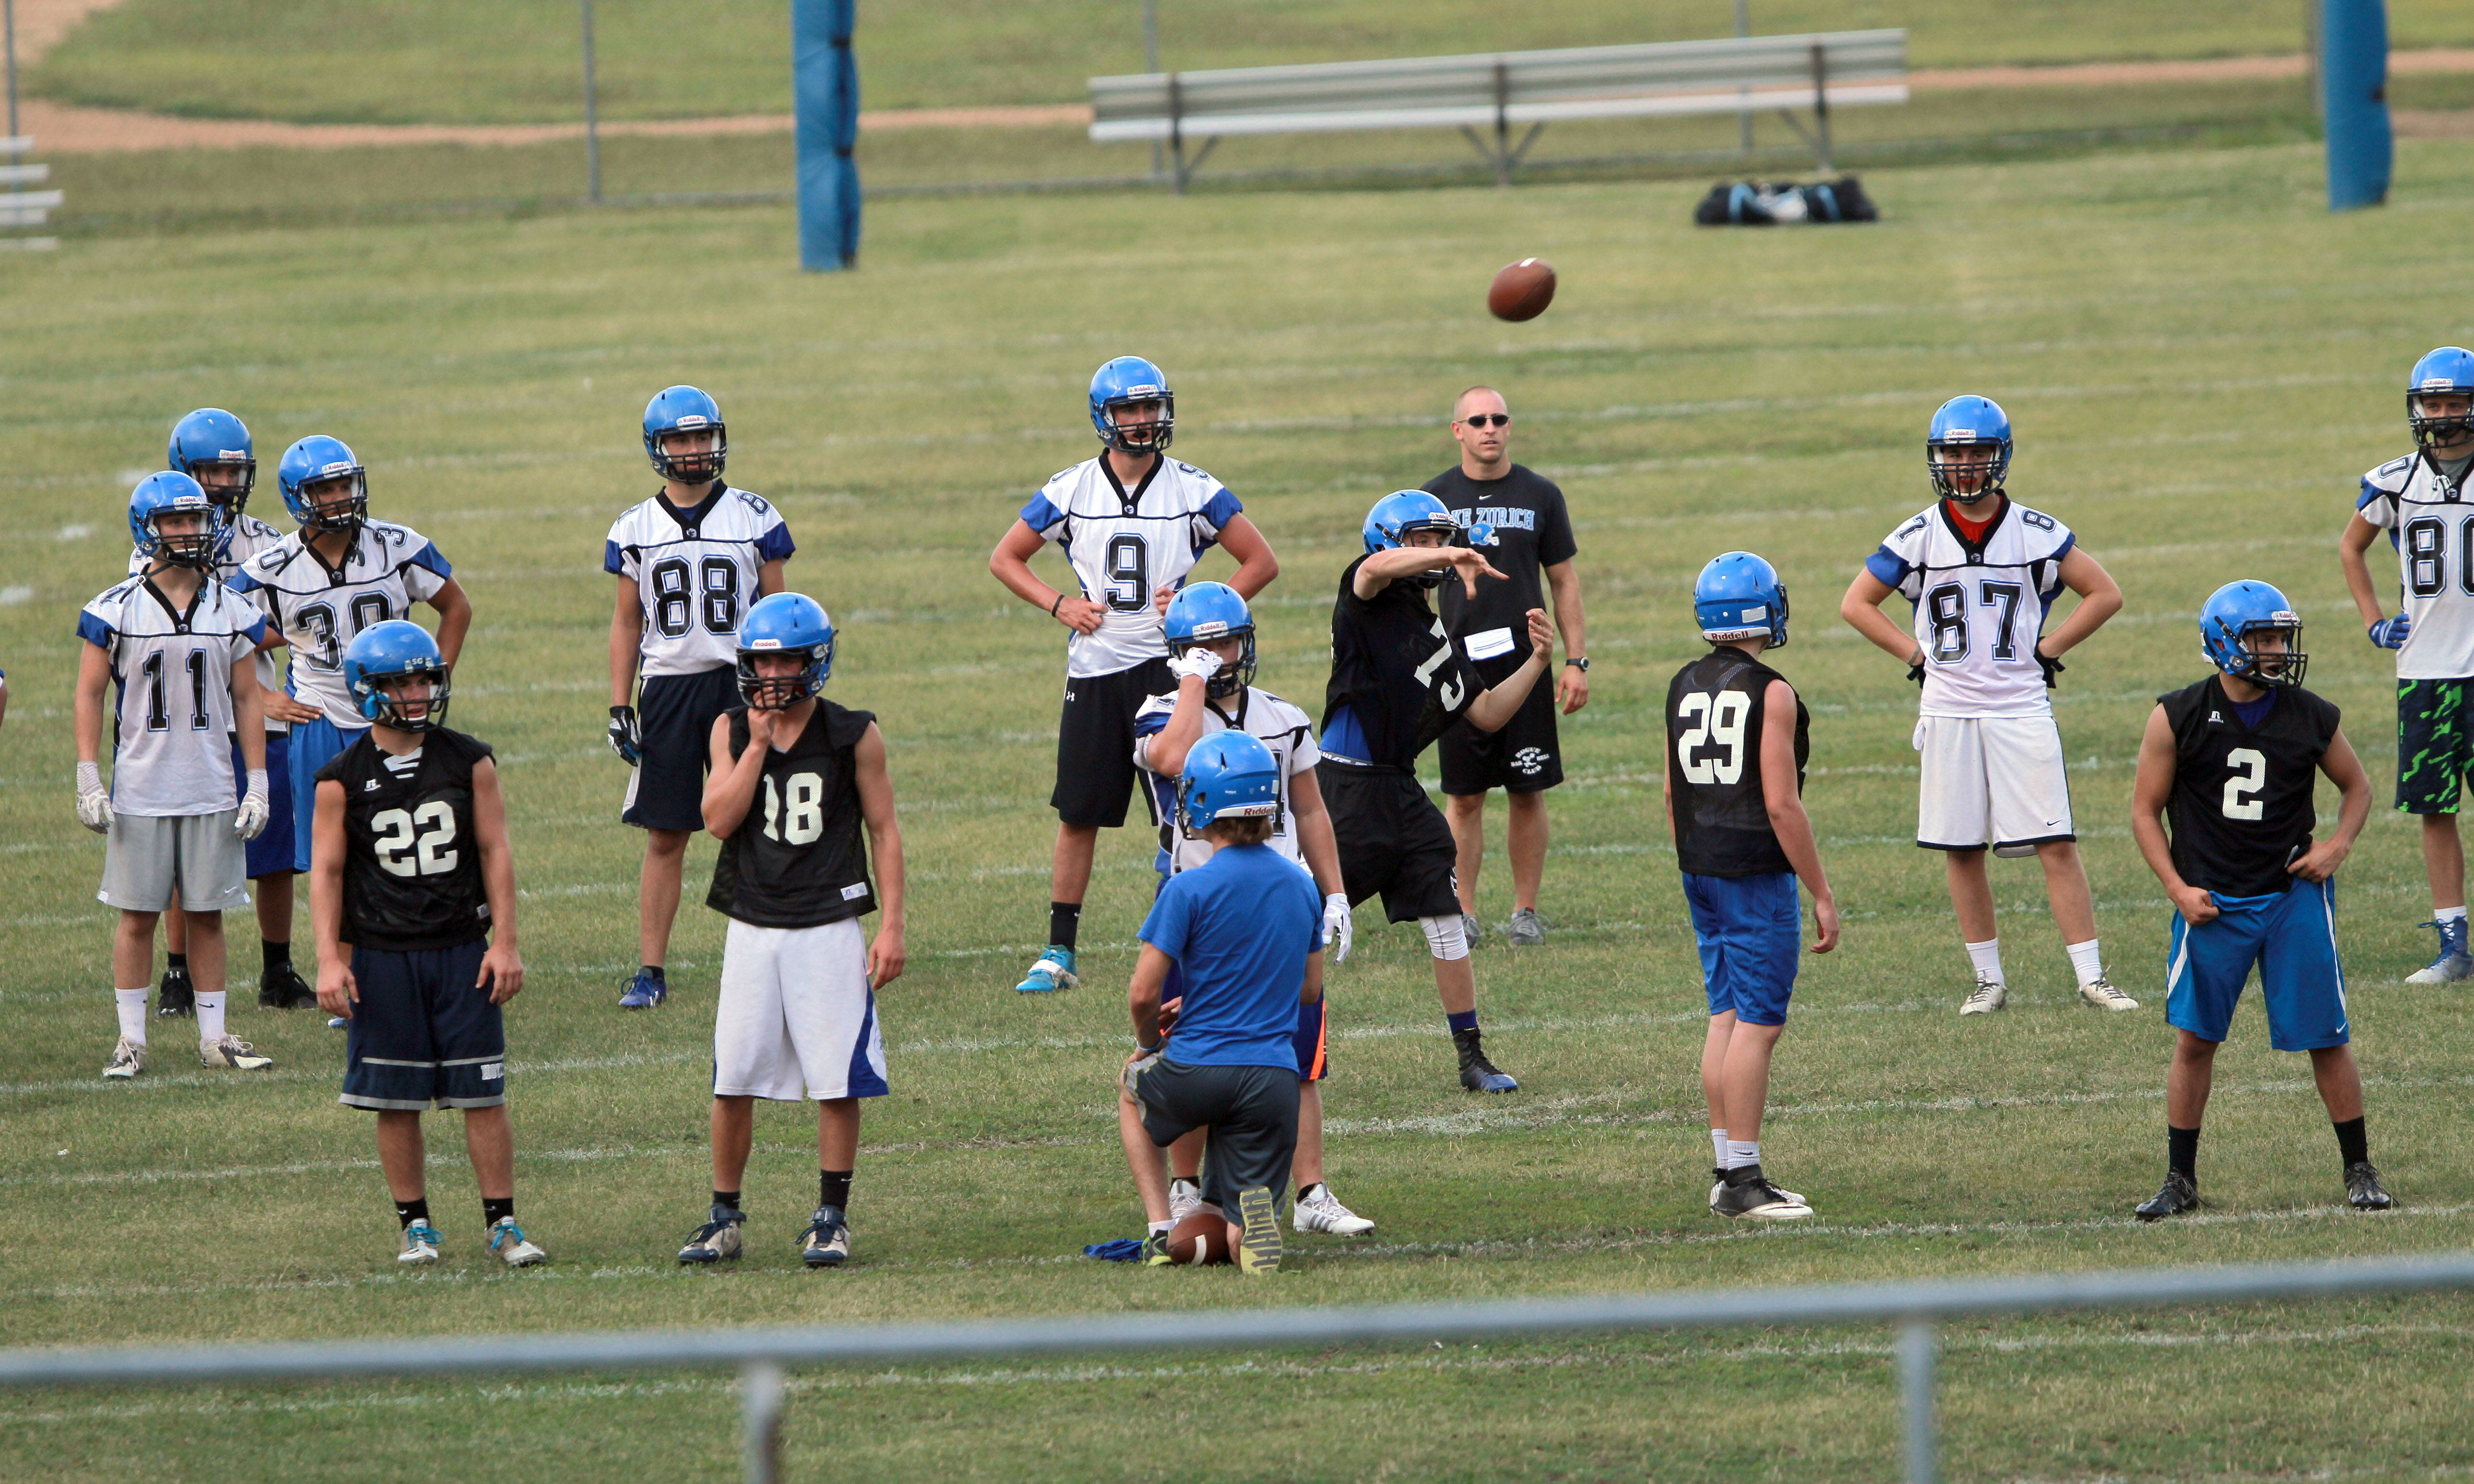 Players go through drills during football practice Monday at Lake Zurich High School.